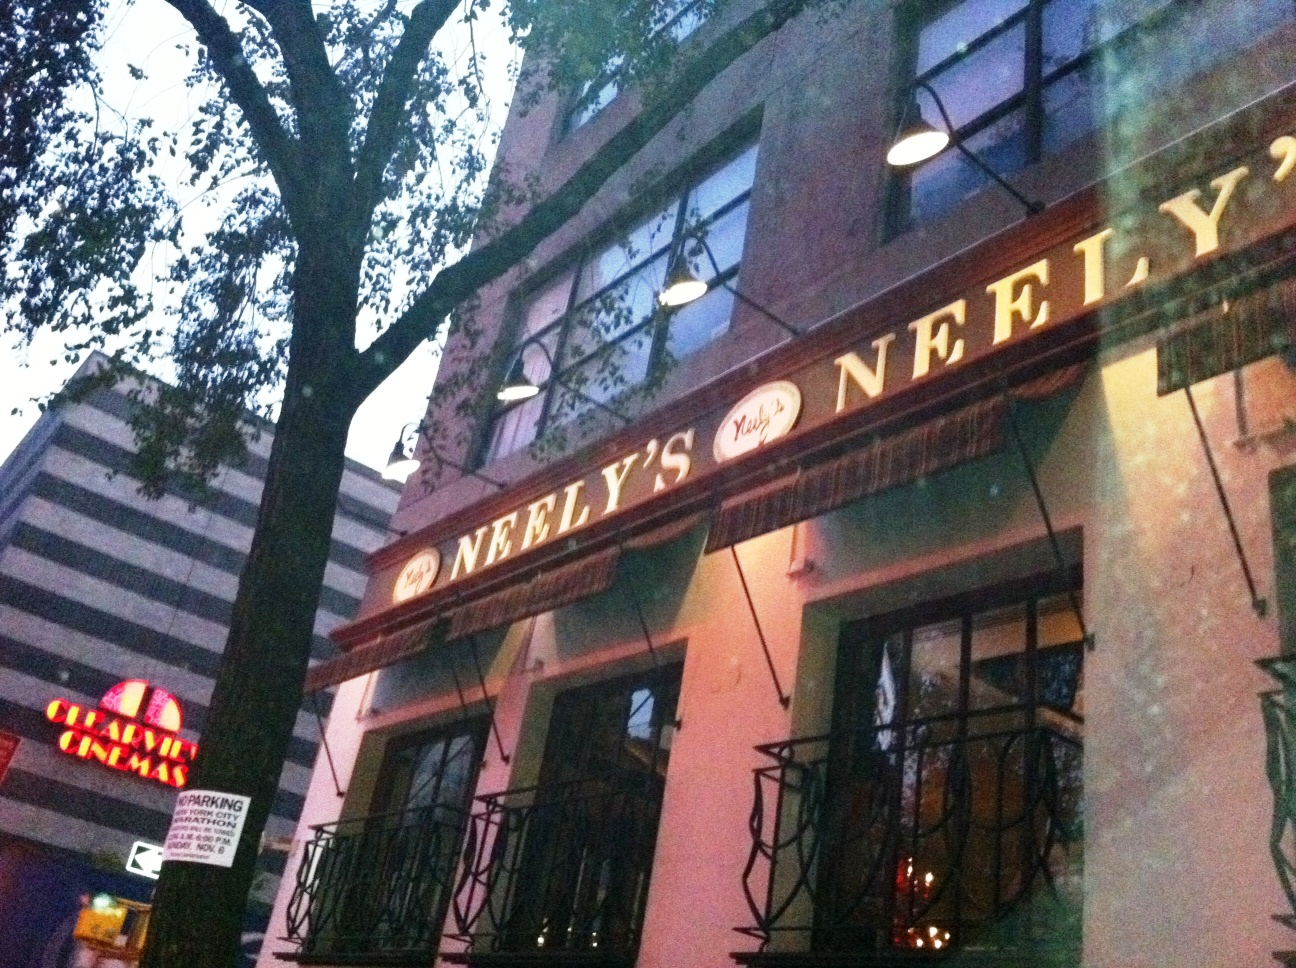 NORTH MEETS SOUTH WHEN NYC WELCOMED THE NEELY'S!